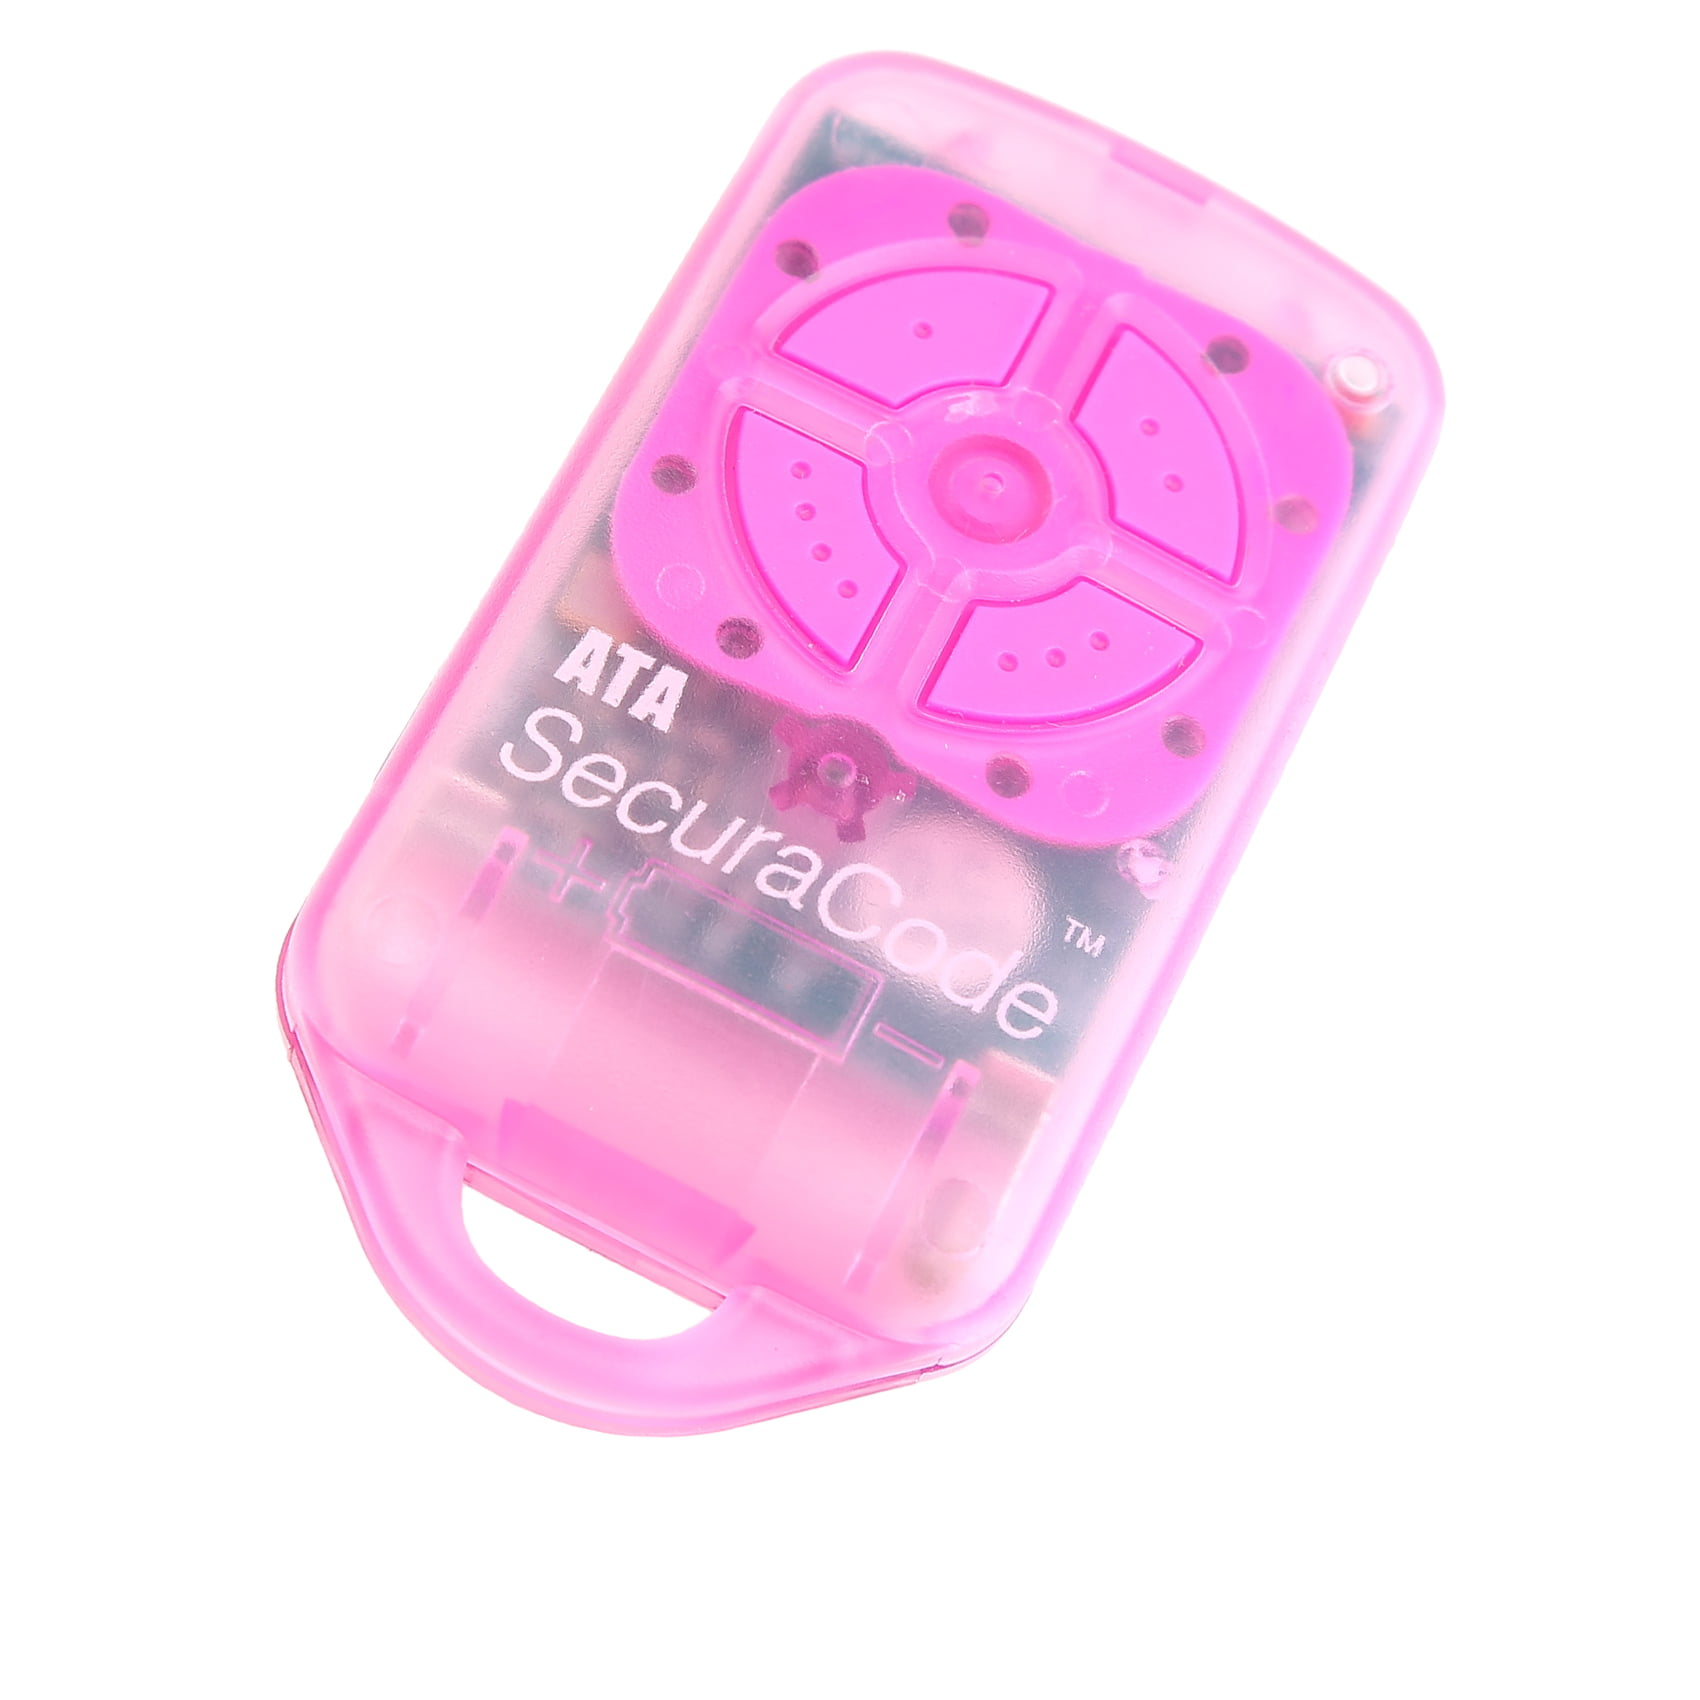 Ata Ptx4 Pink Garage Door Remote Securacode National Garage